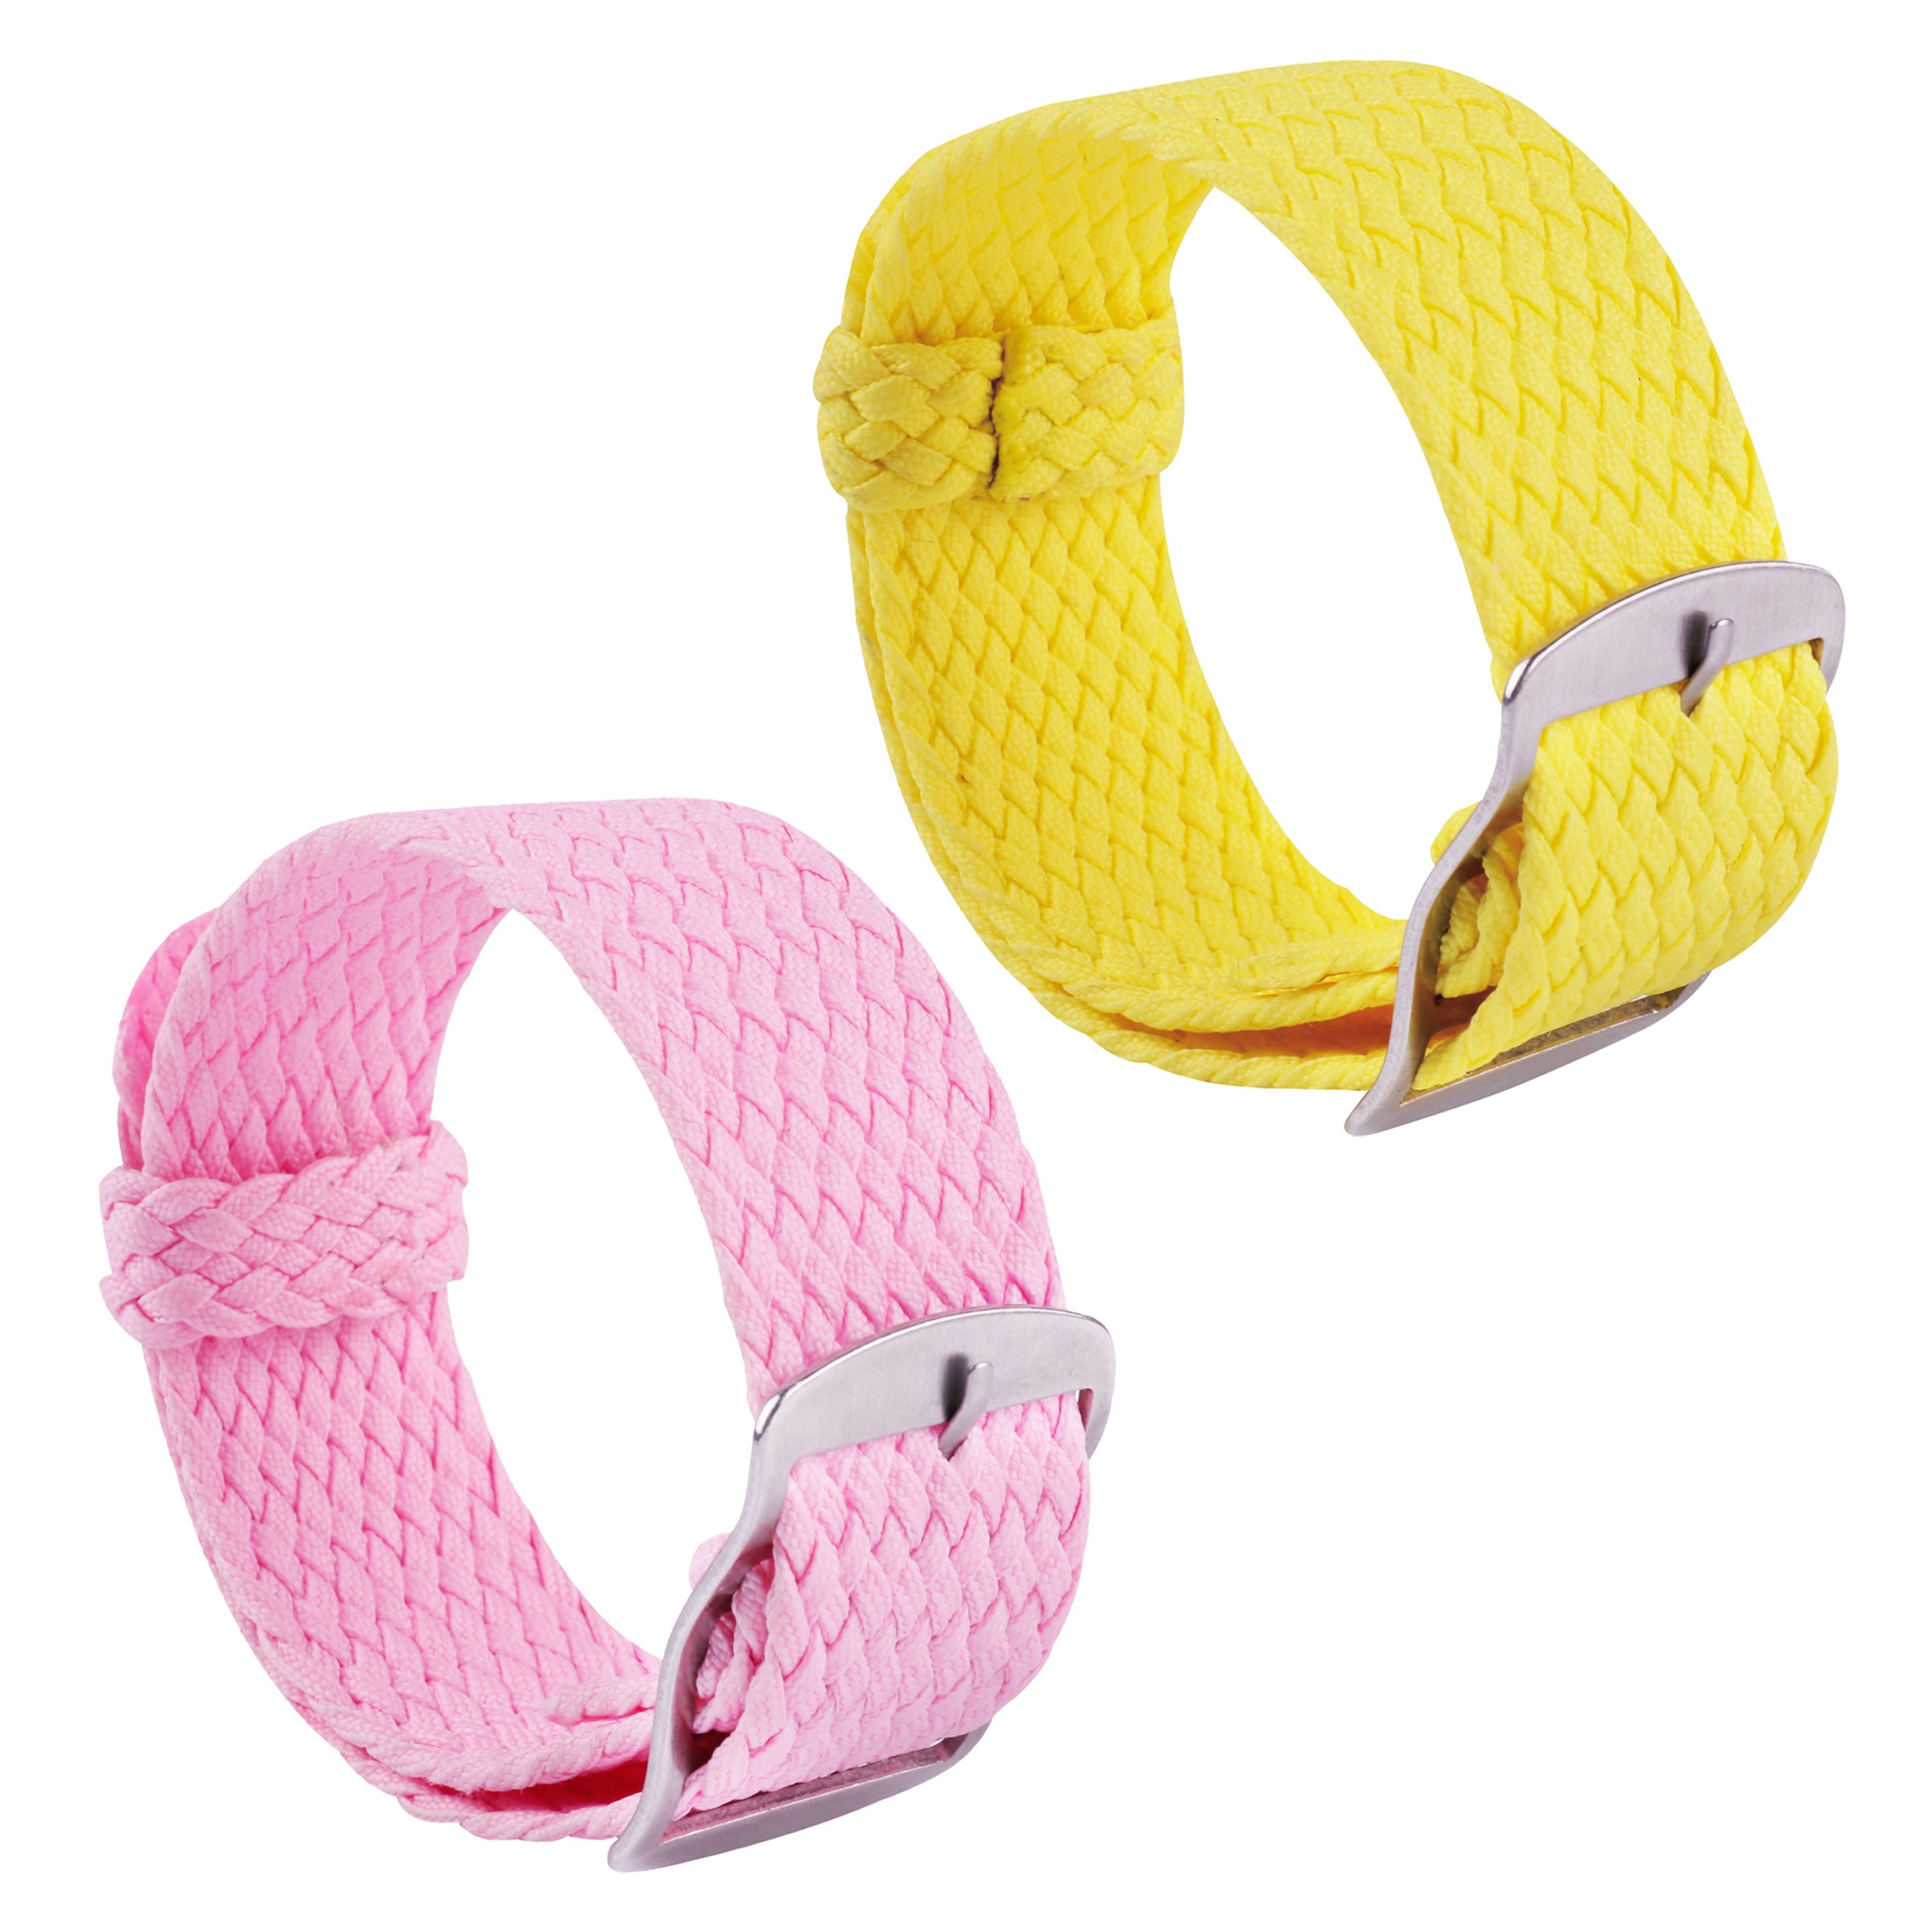 2pcs Nylon Watch Strap Perlon Braided Woven Replacement Watch Band Men Women 14mm 16mm 18mm 20mm 22mm Red by BONSTRAP (Image #1)